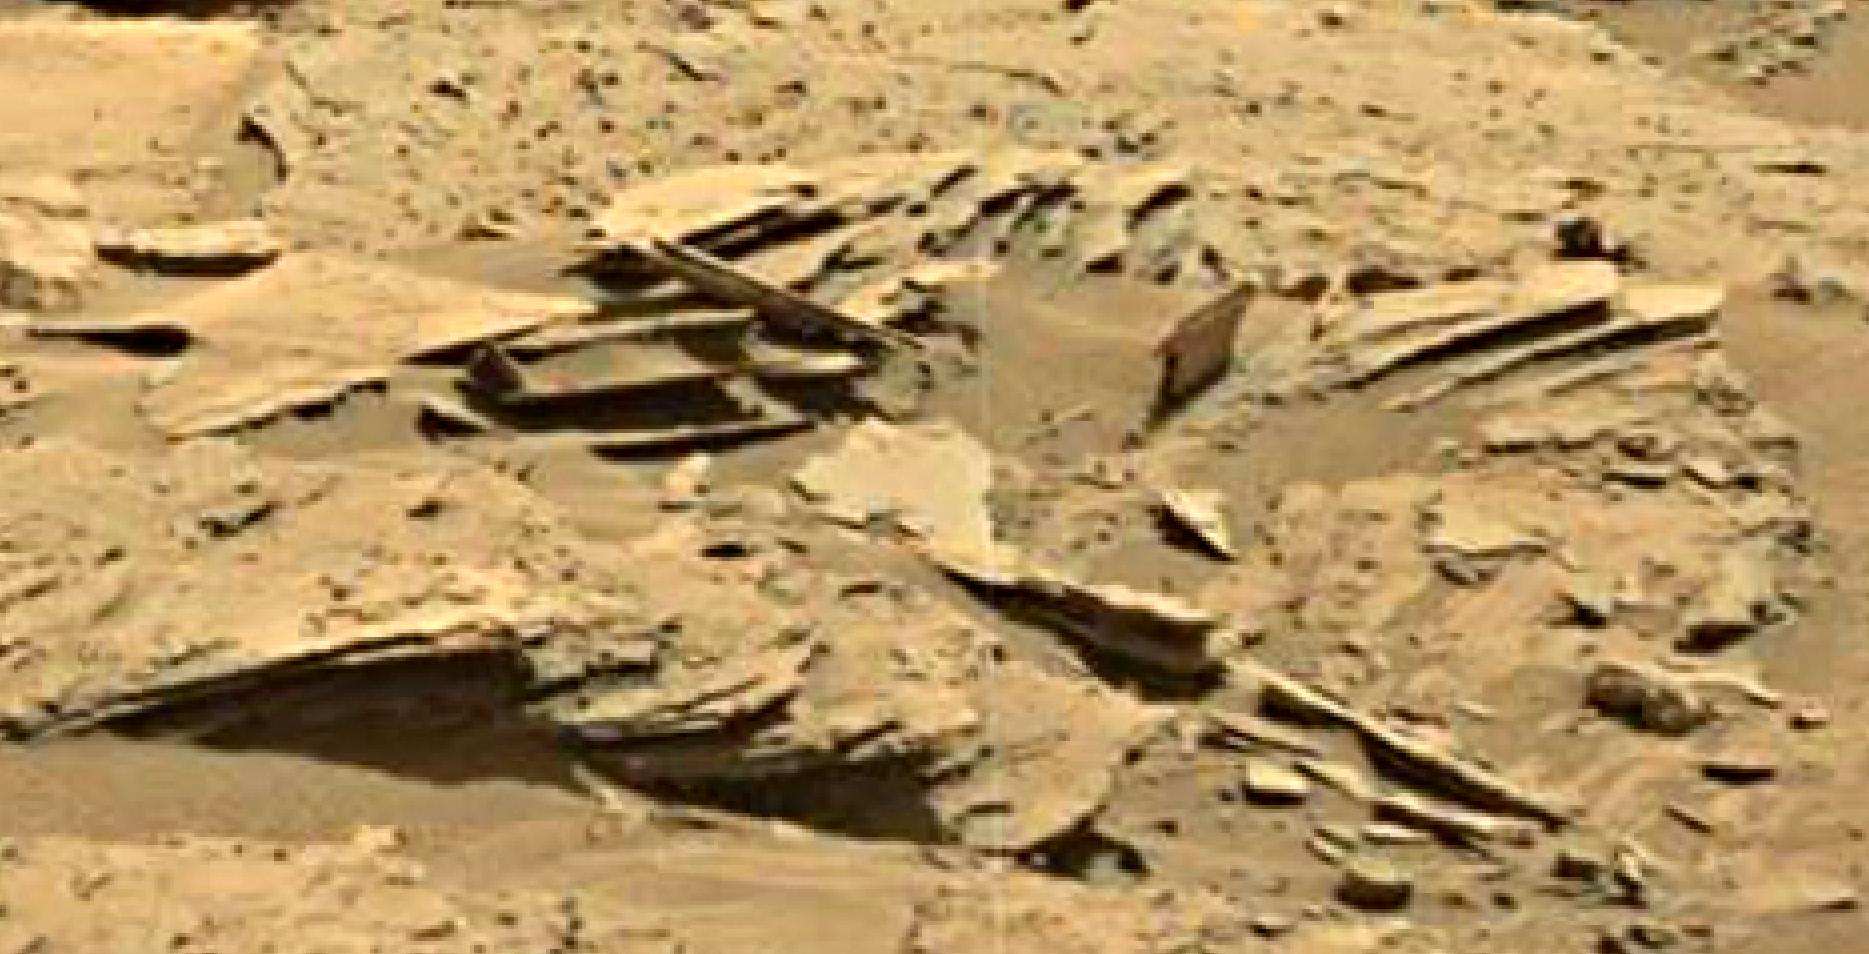 mars sol 1346 anomaly-artifacts 19 was life on mars